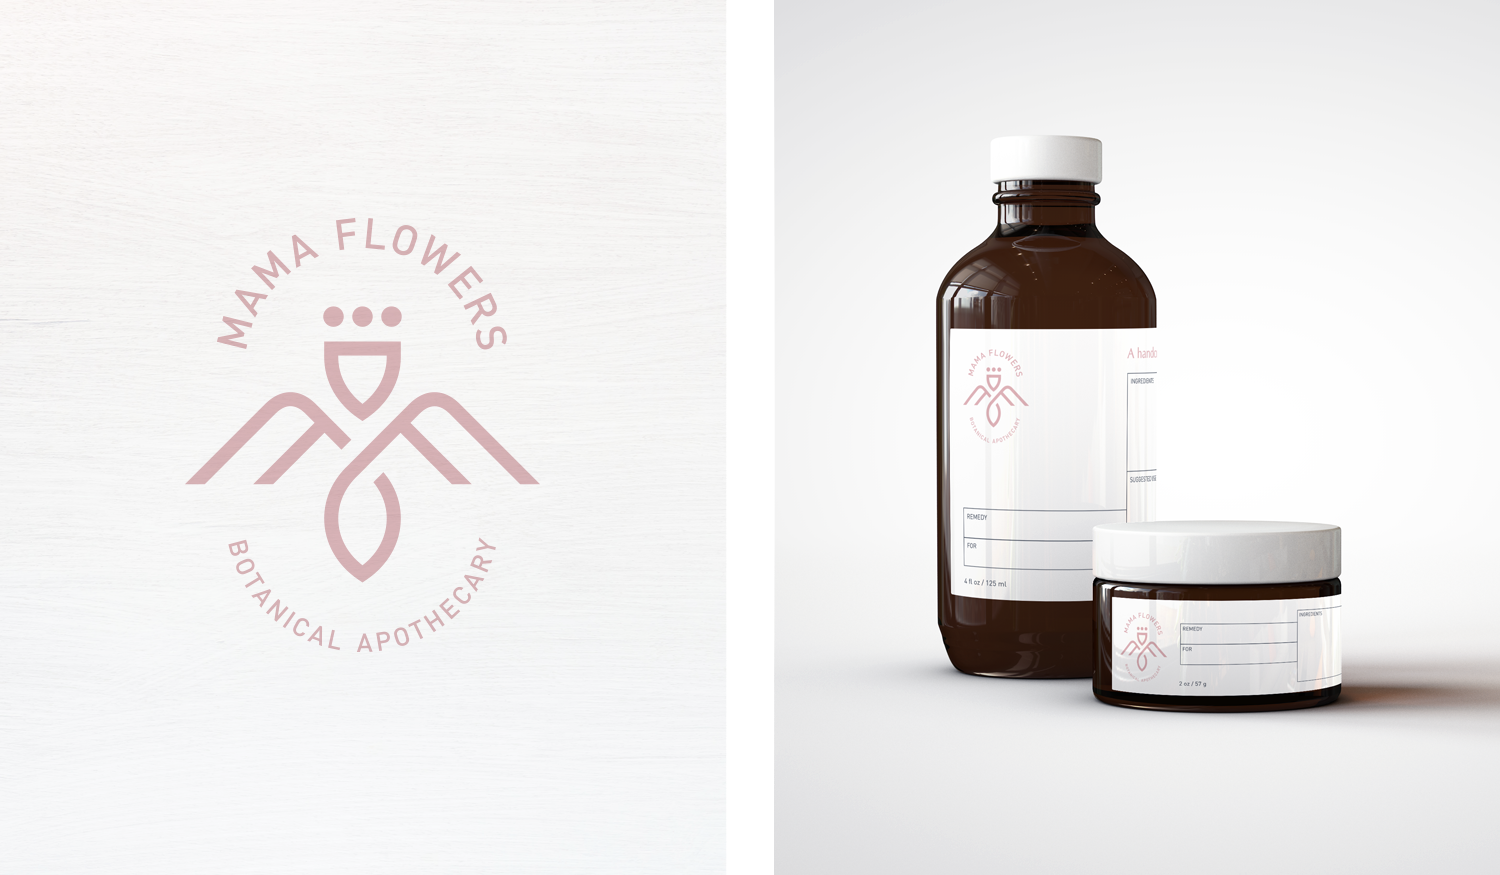 Mama Flowers visual identity logo lockup and packaging label design